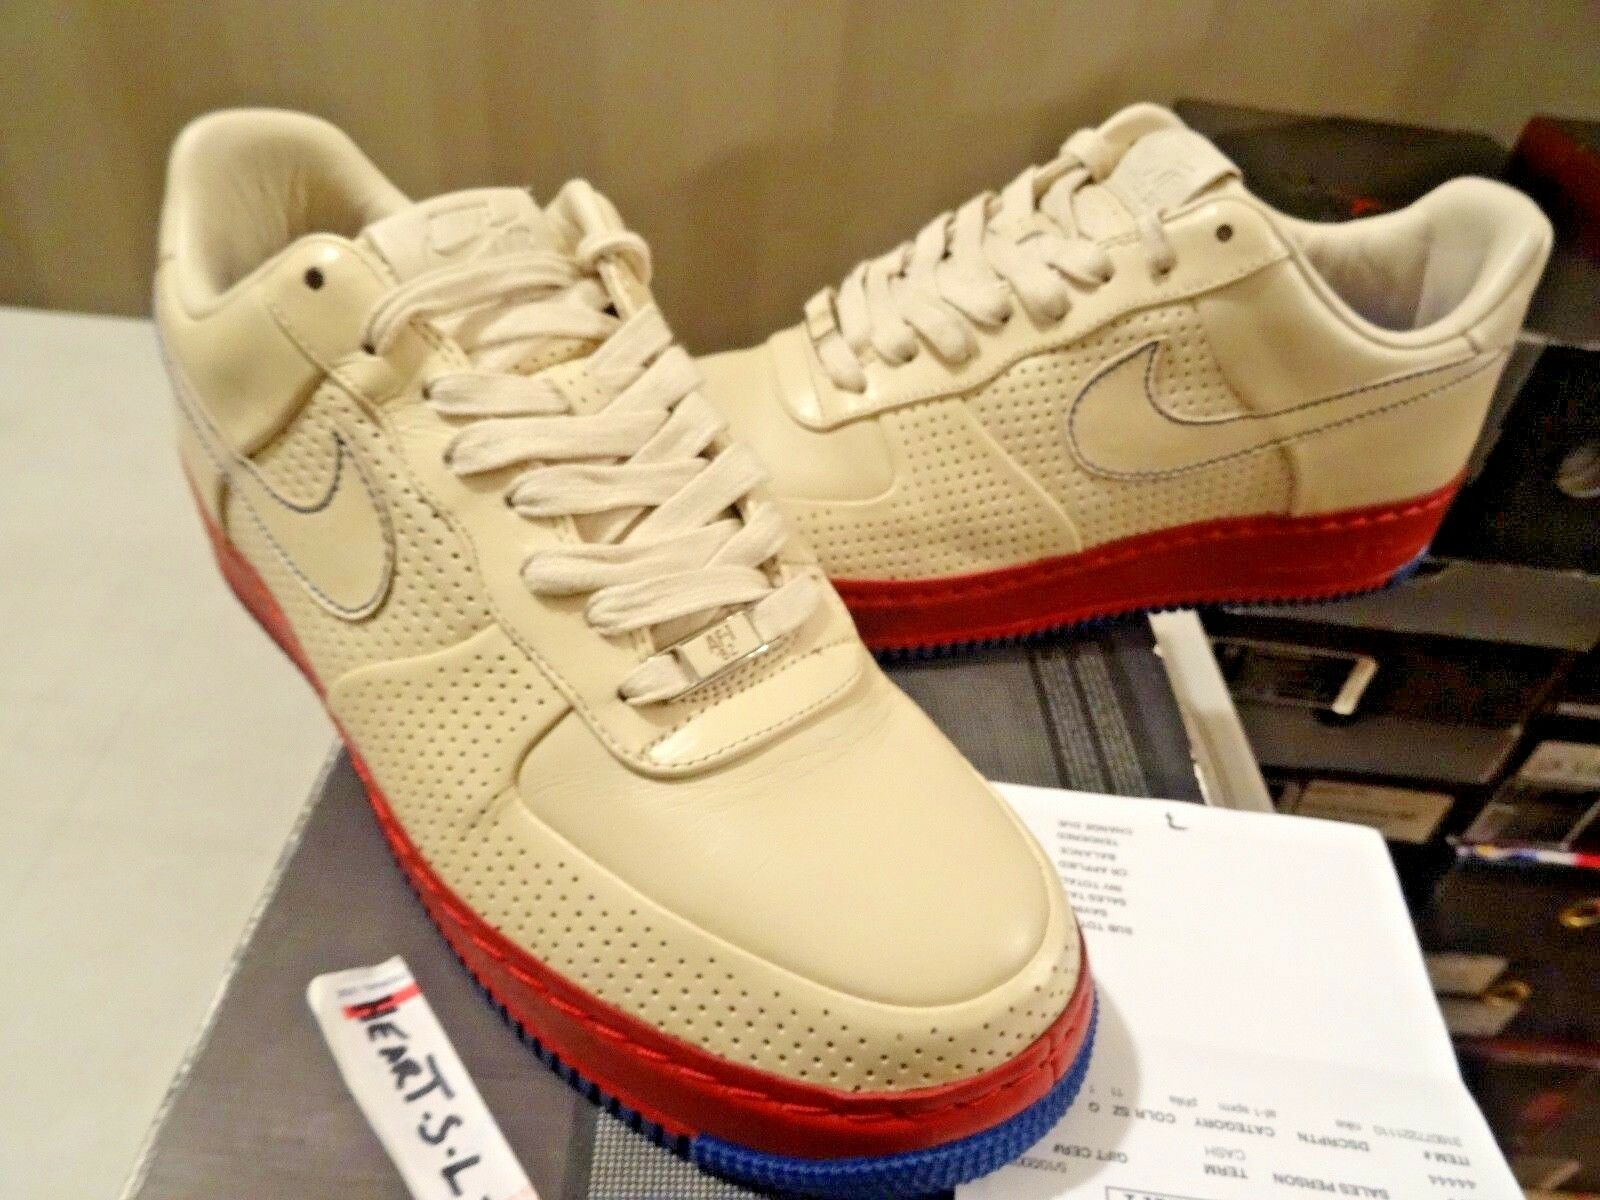 ae0fe3ee33 NIKE AIR FORCE 1 AF1 SPRM MCO (SNEAKER STADIUM RARE 316077-221 SZ 11  Philly) I ntkfod8089-Athletic Shoes